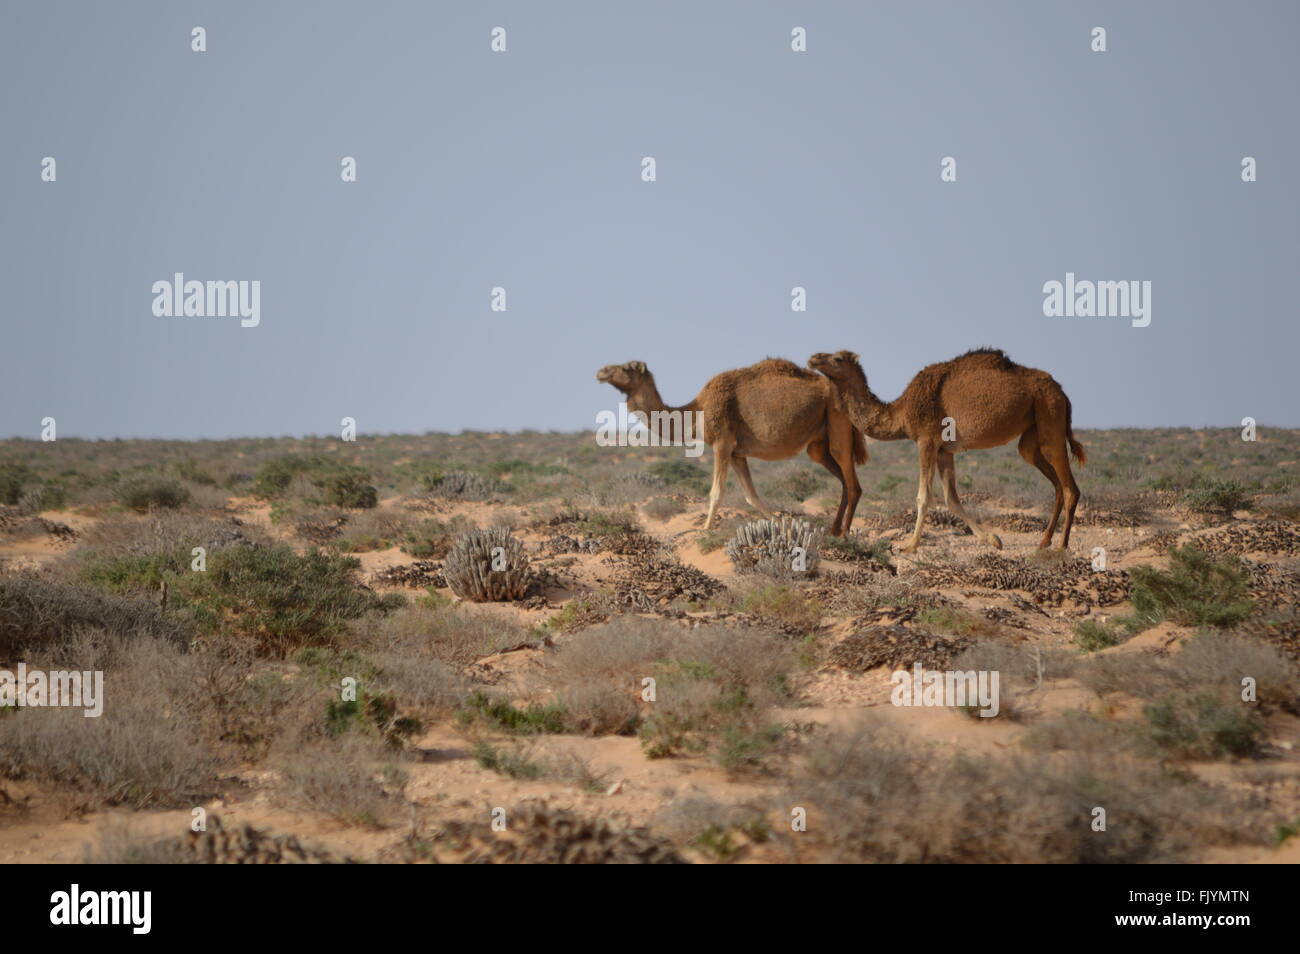 Camels in Sahara, Morocco - Stock Image